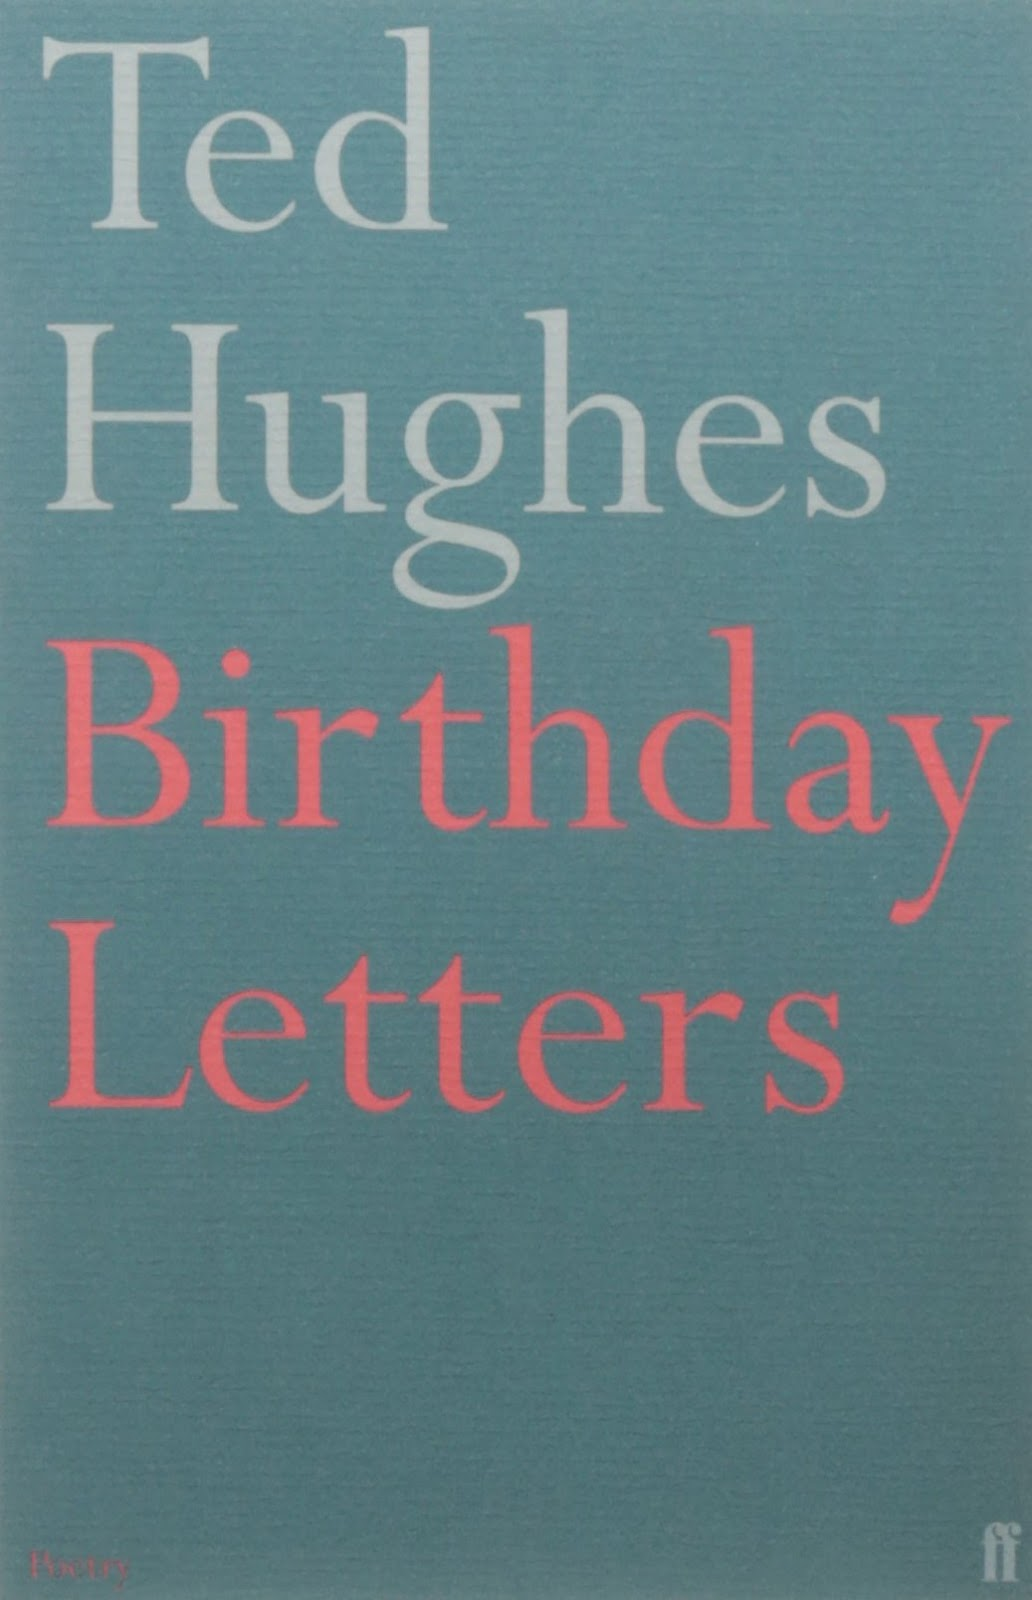 ted hughes birthday letters essay example Discuss the techniques that lp hartley and ted hughes employ to evoke memory an unpublished copy of 'birthday letters' that hughes had ted hughes essays.